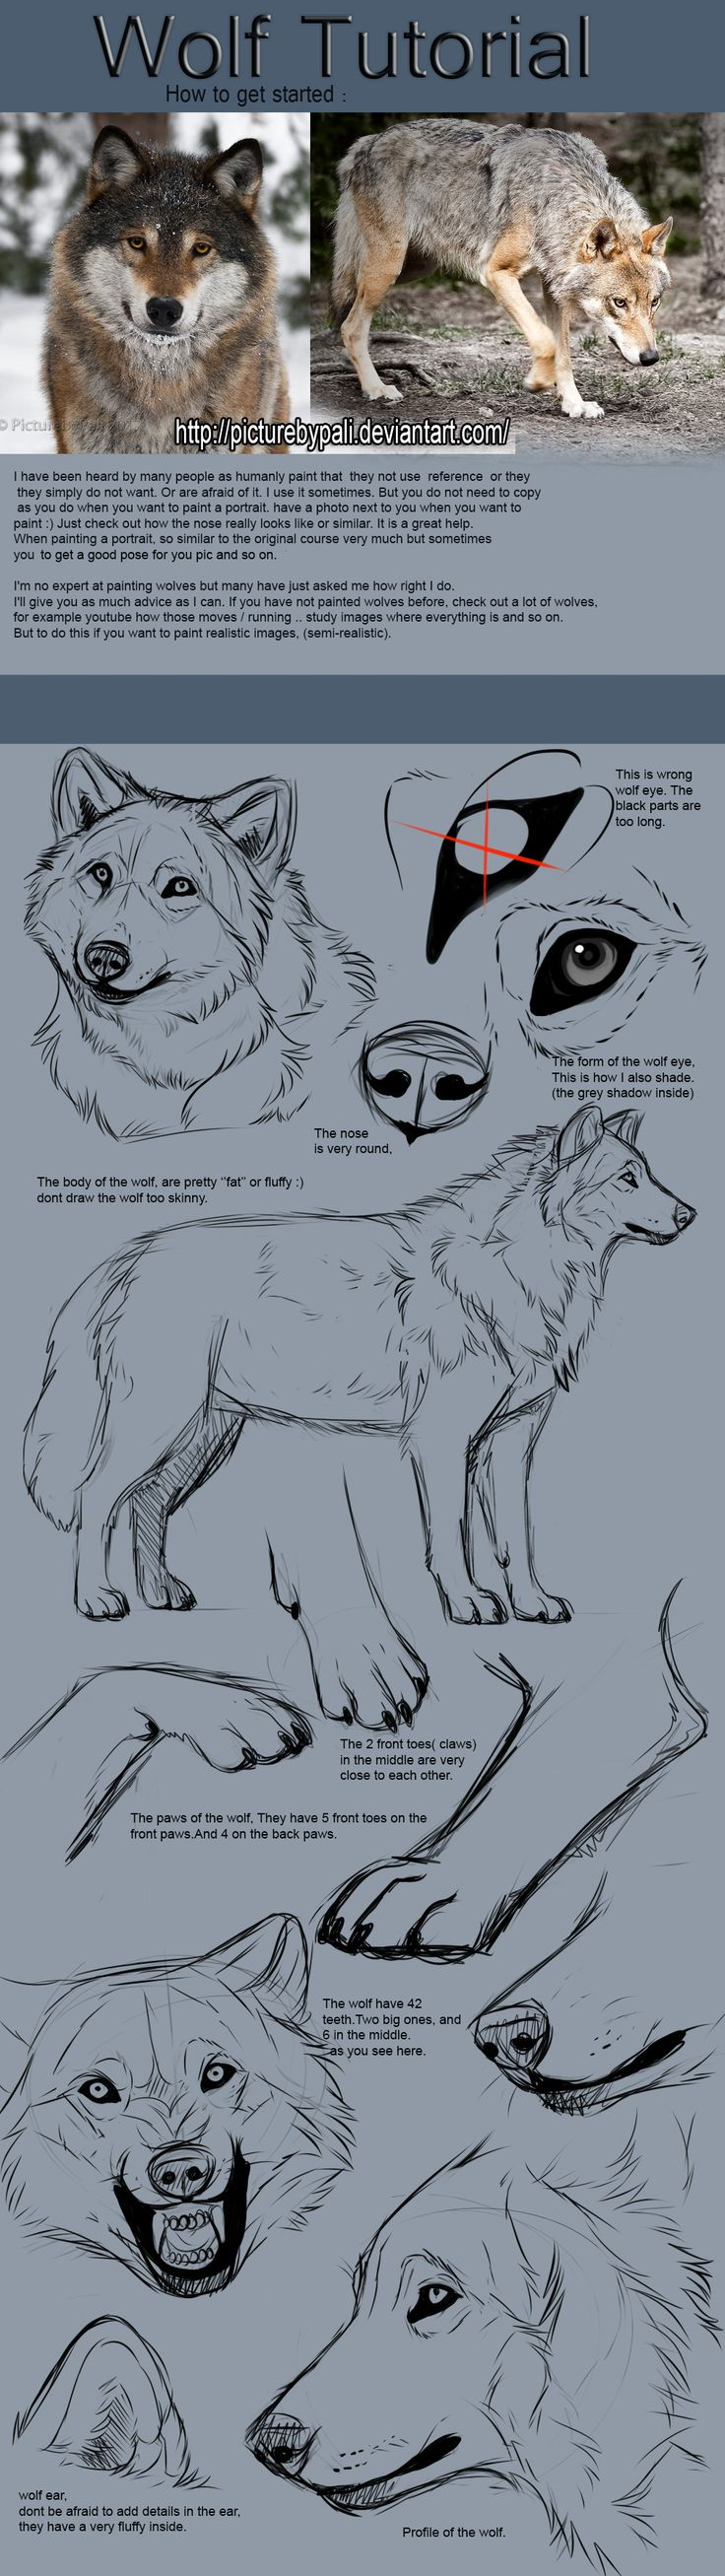 Wolf Tutorial by TheMysticWolf on Deviantart